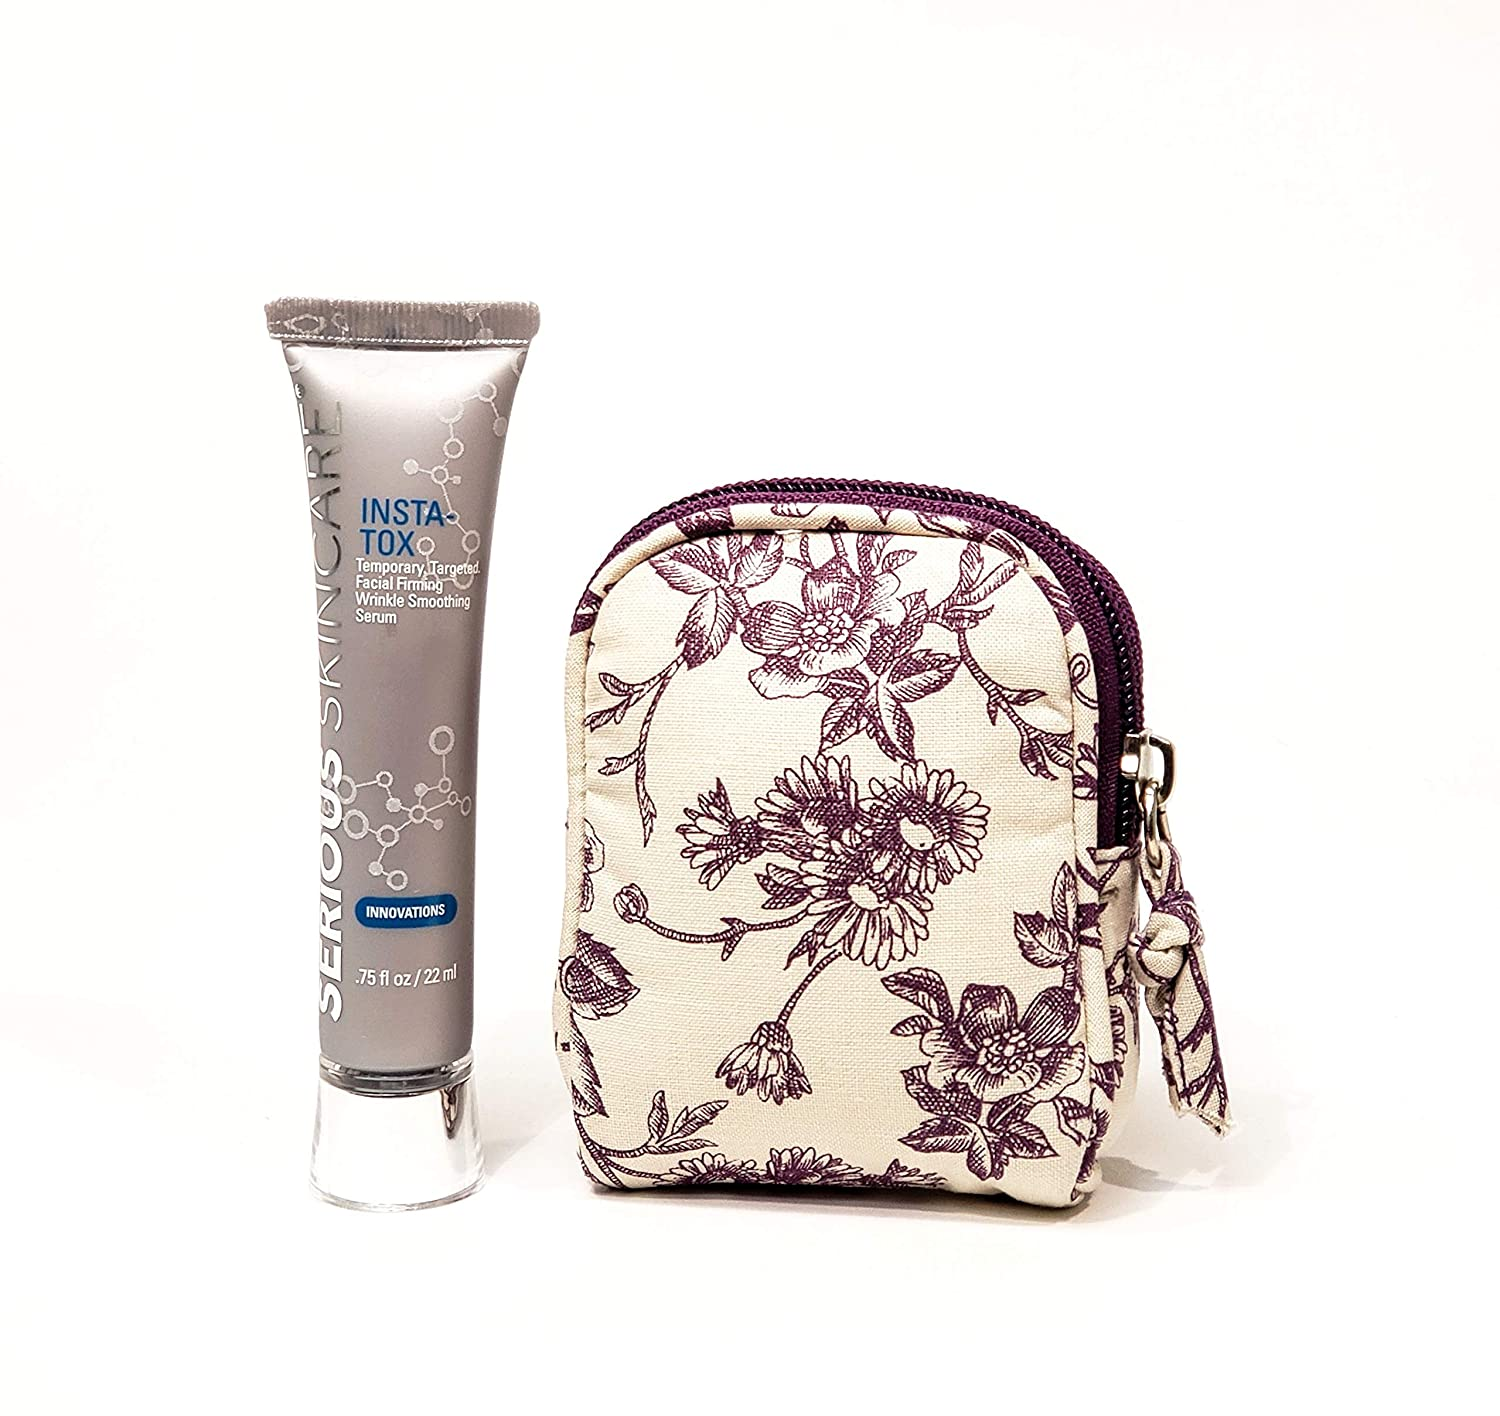 Serious Skincare INSTA-TOX .75 oz. with Plum Toile Cosmetic Bag